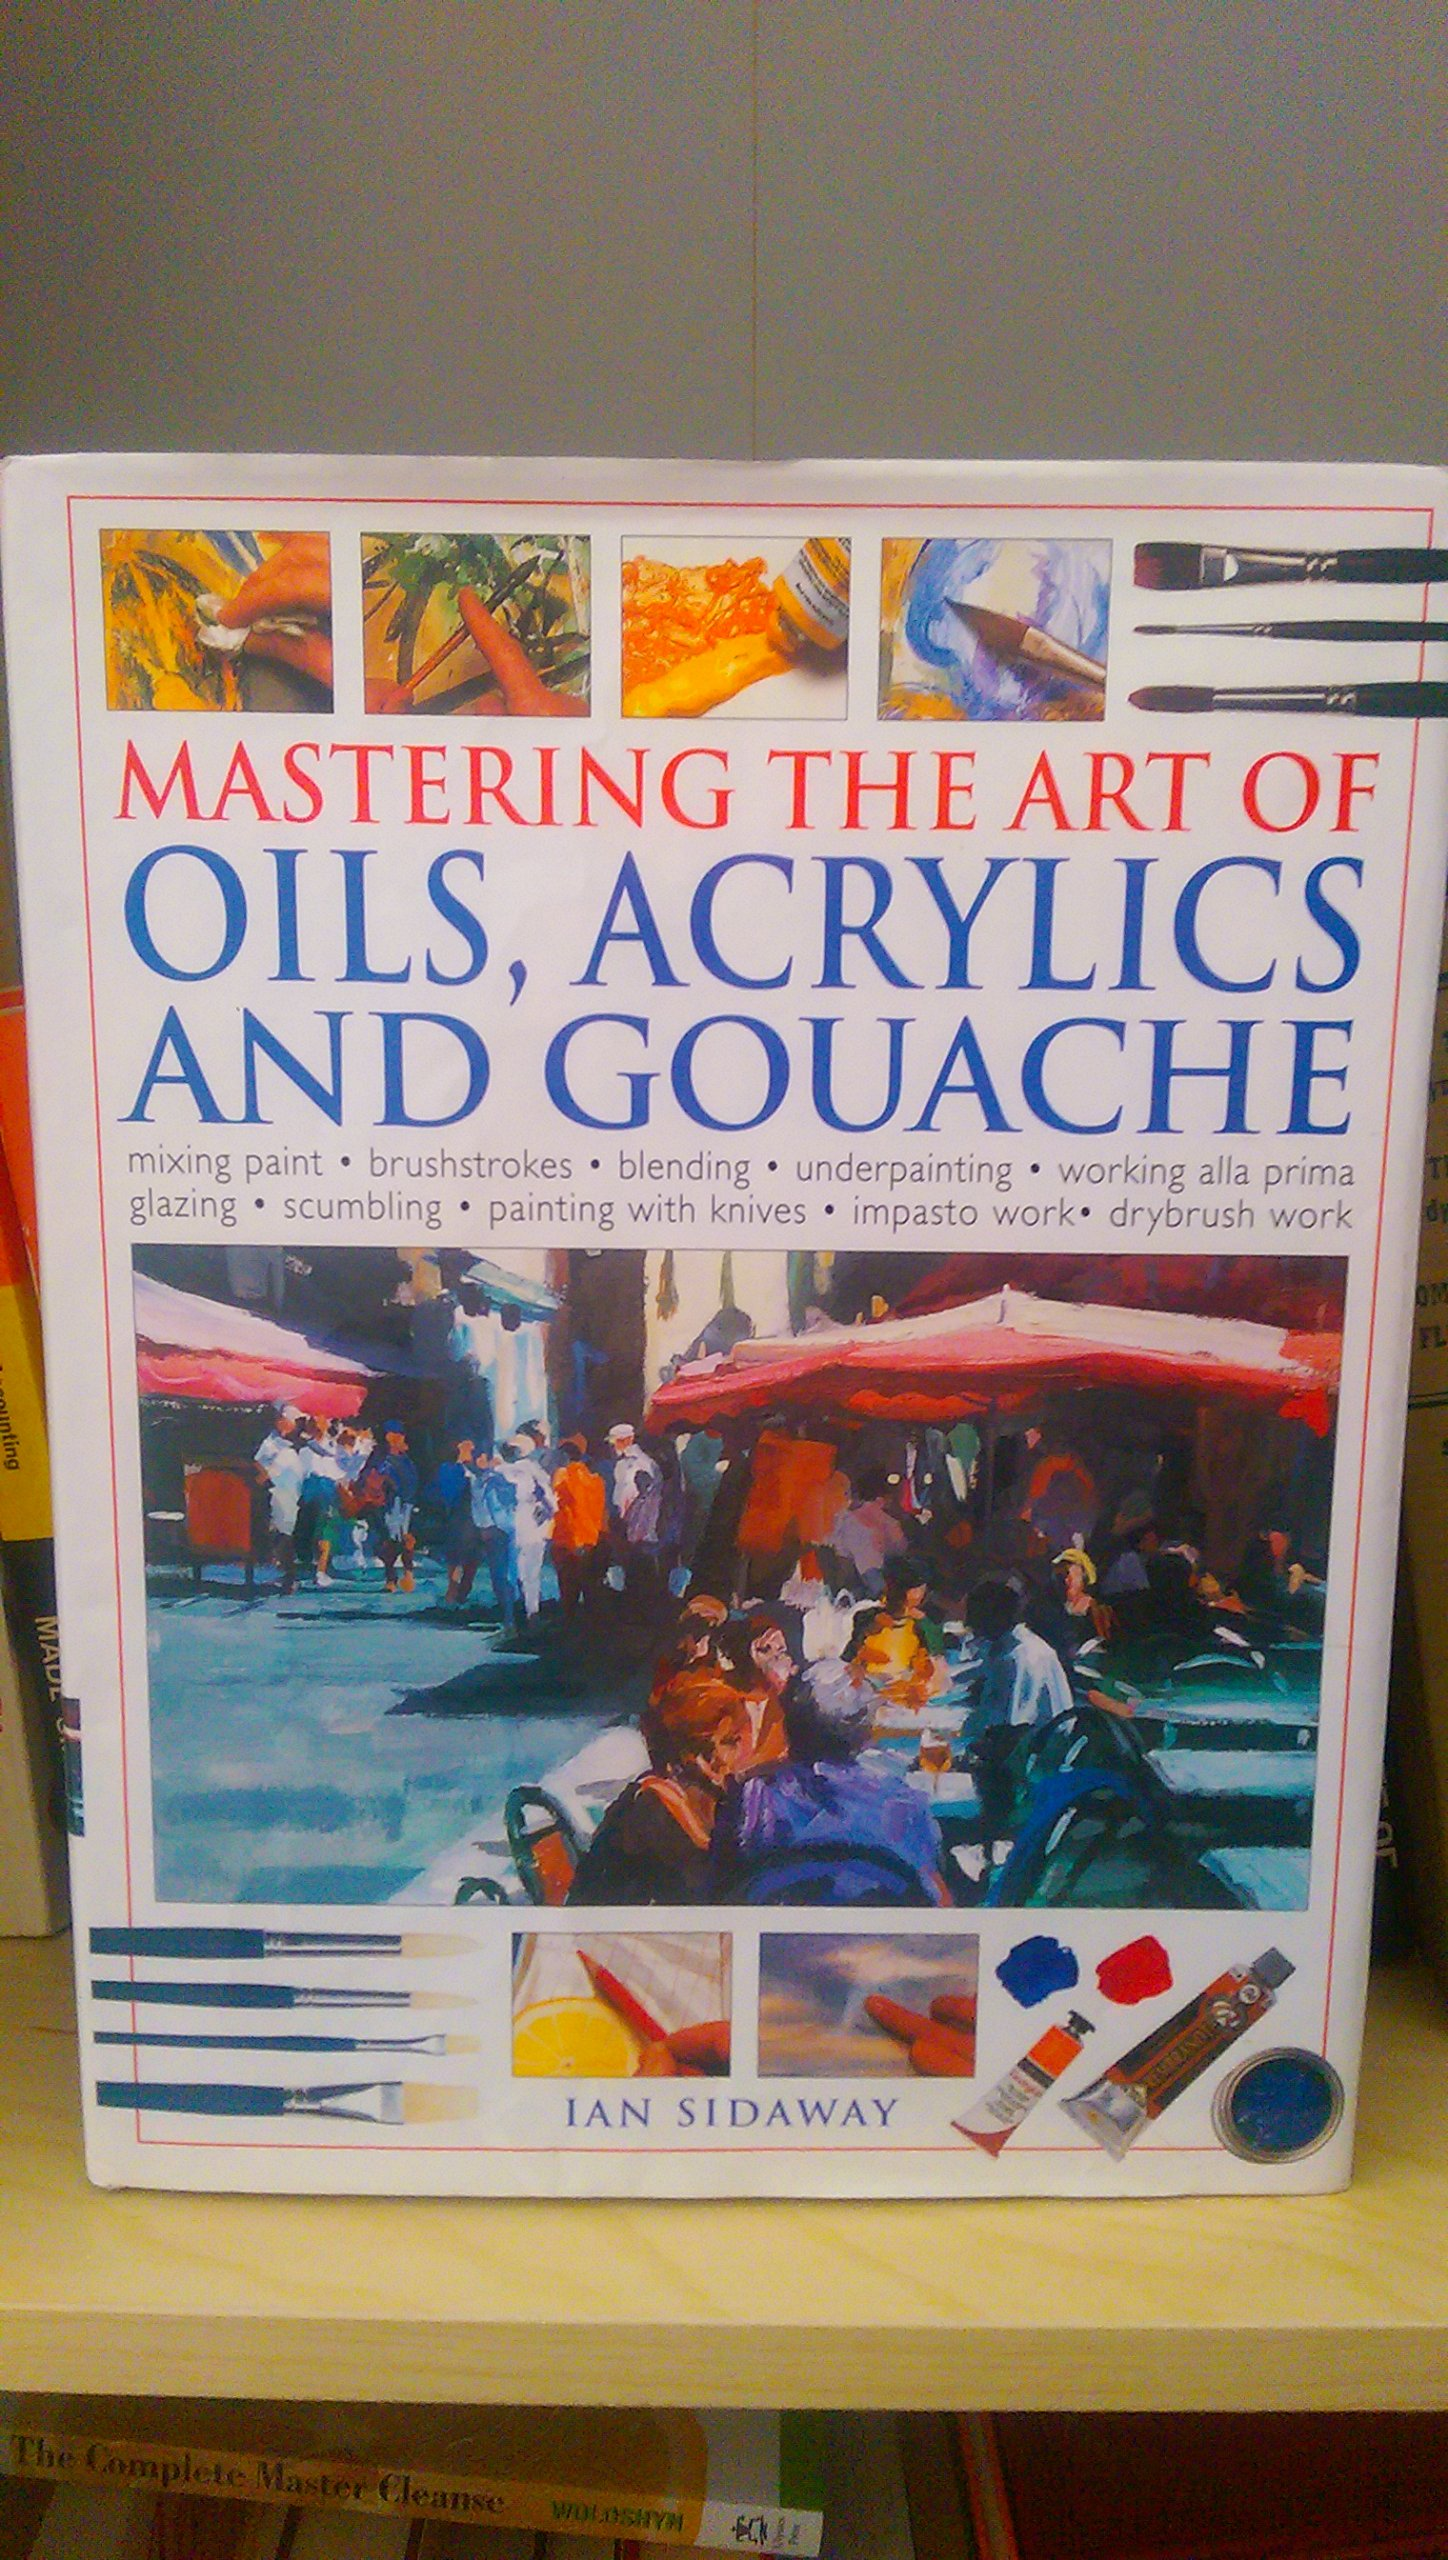 Mastering the Art of Oils, Acrylics and Gouache pdf